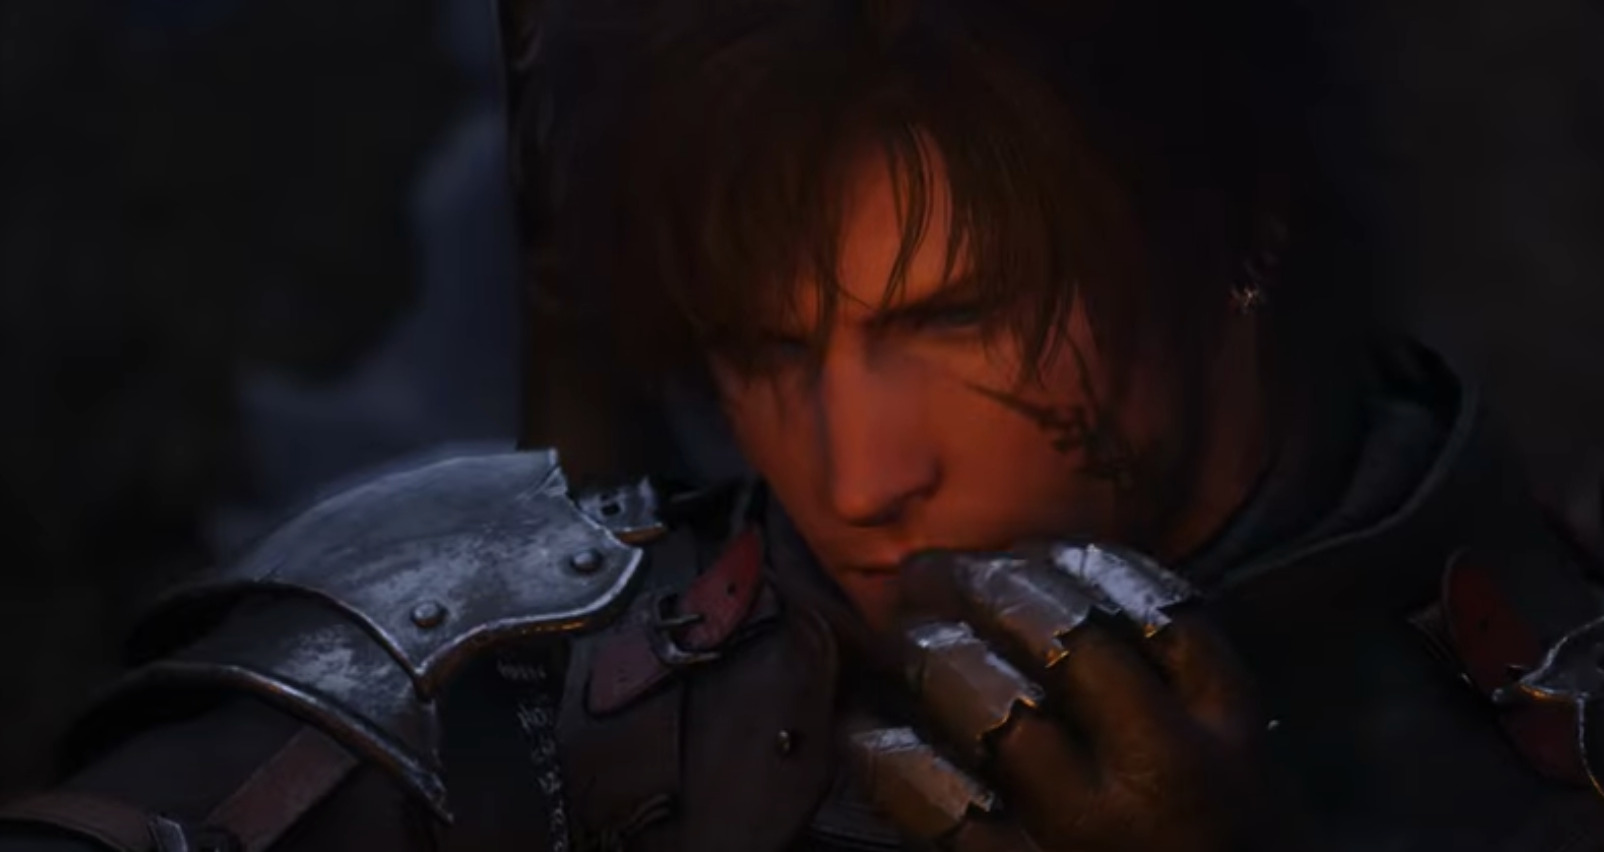 Final Fantasy 16 Might Be Making A Major Change To The Franchise Based On The Teaser Trailer